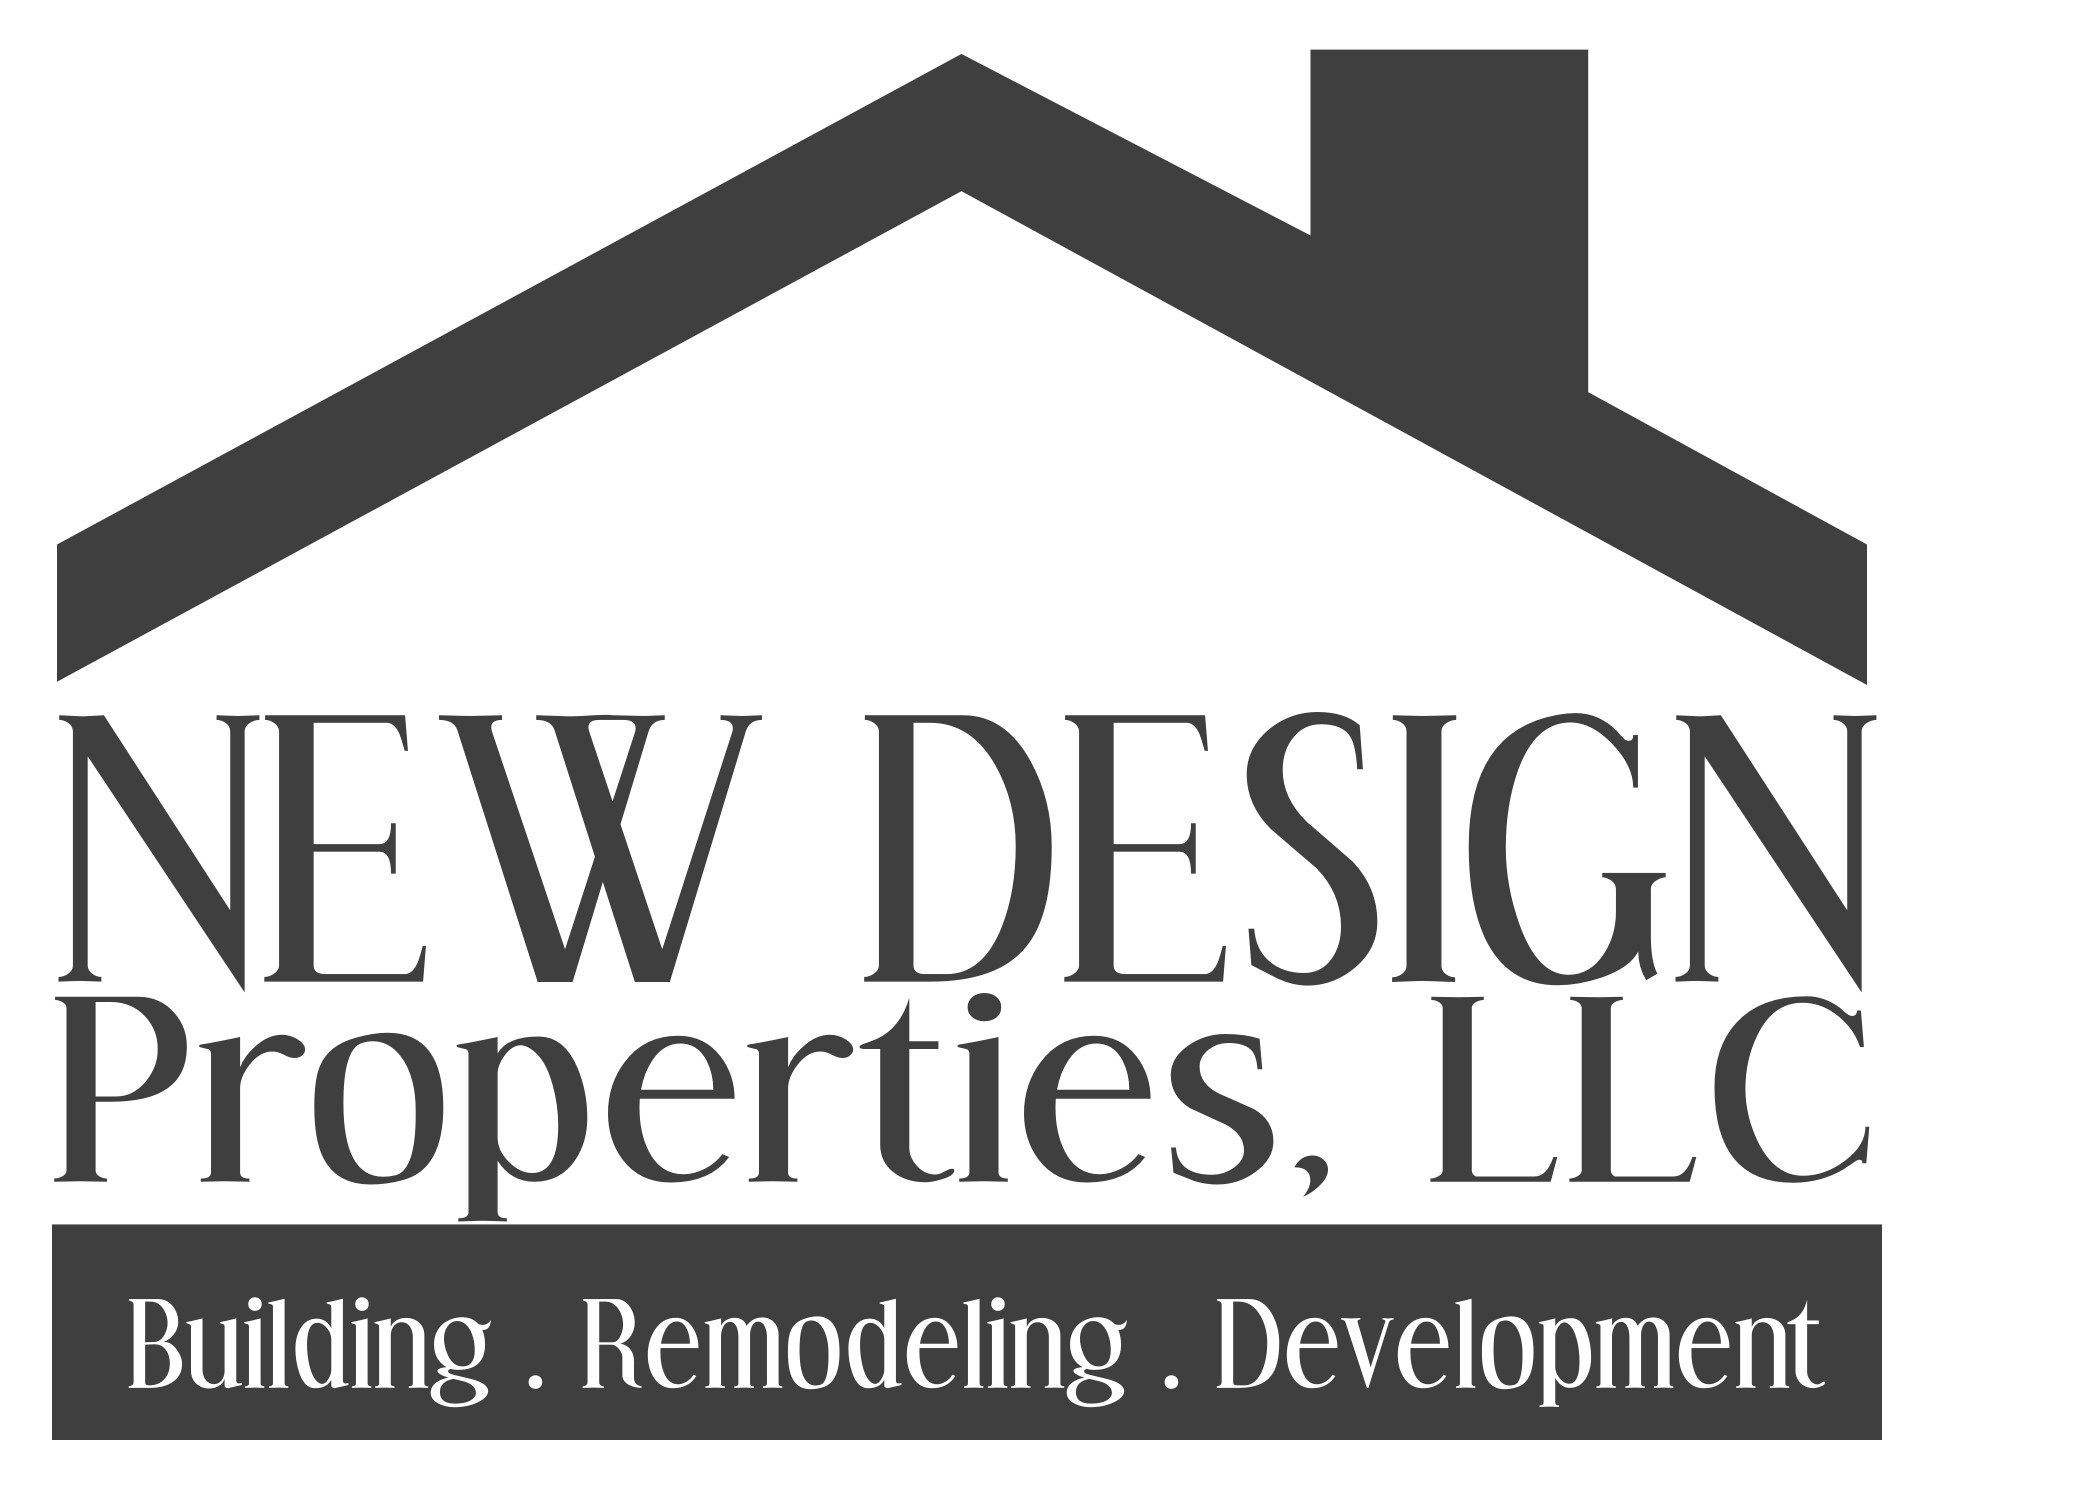 New Design Properties